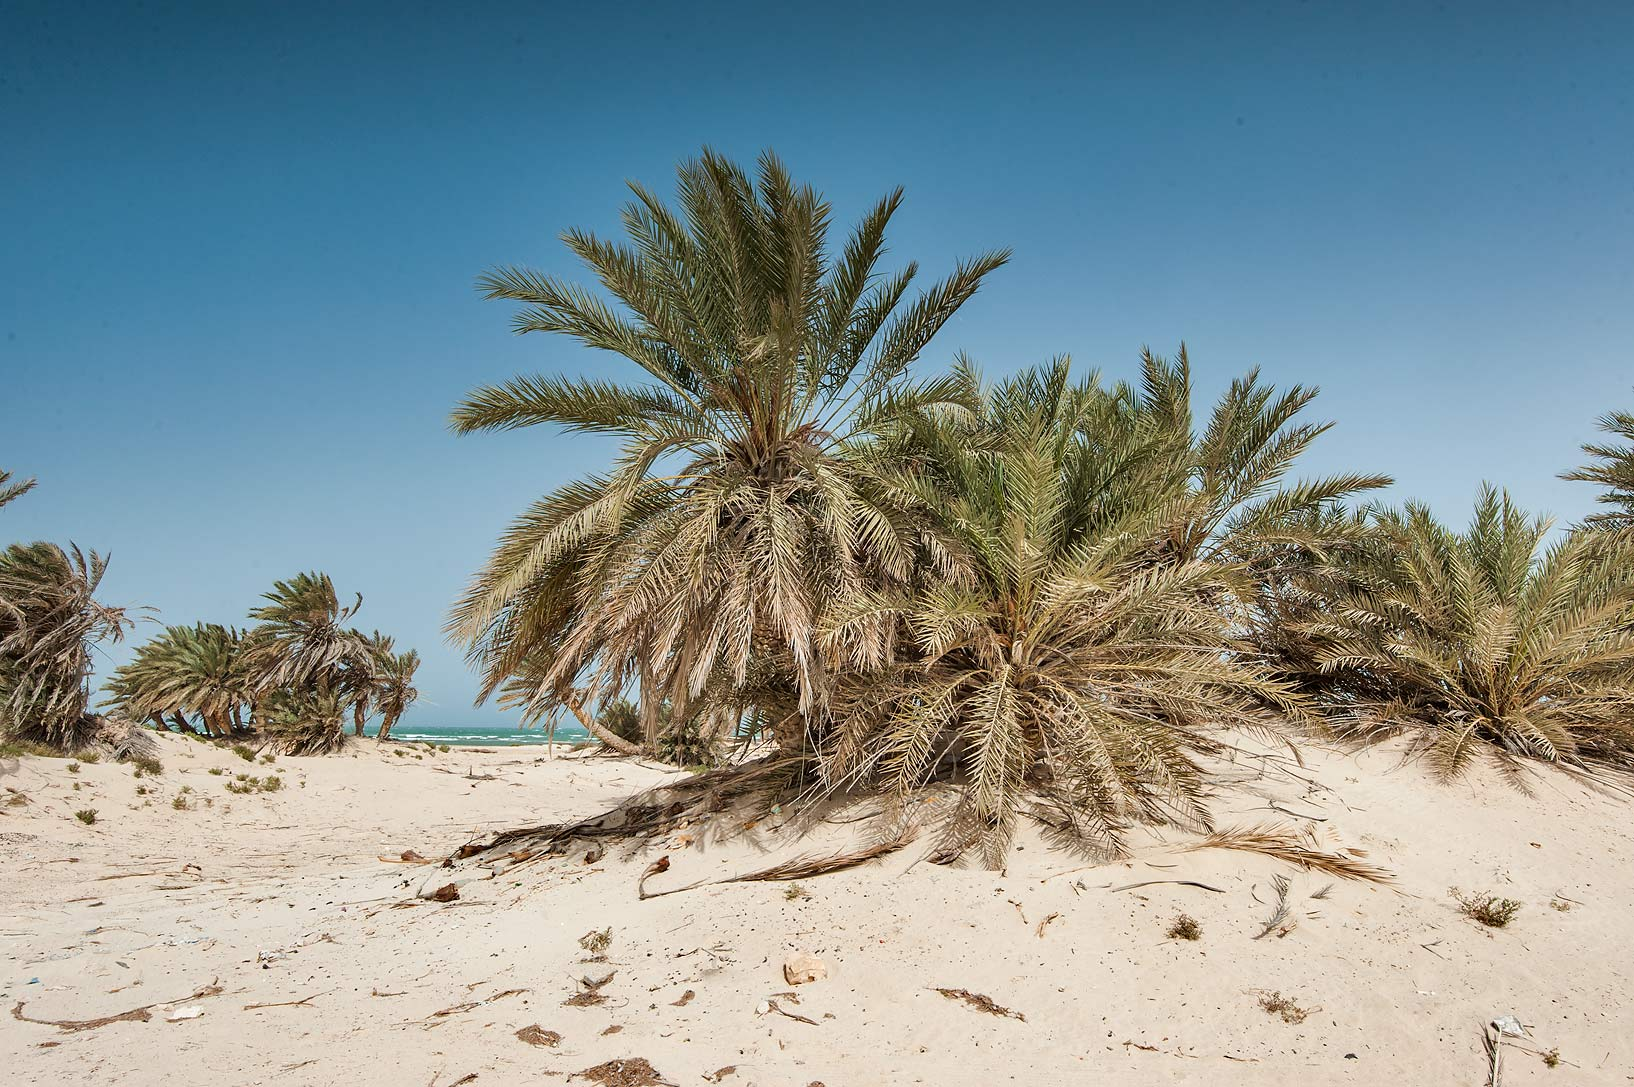 Grove of date palms (Phoenix dactylifera, local...near Umm Bab in south-western Qatar